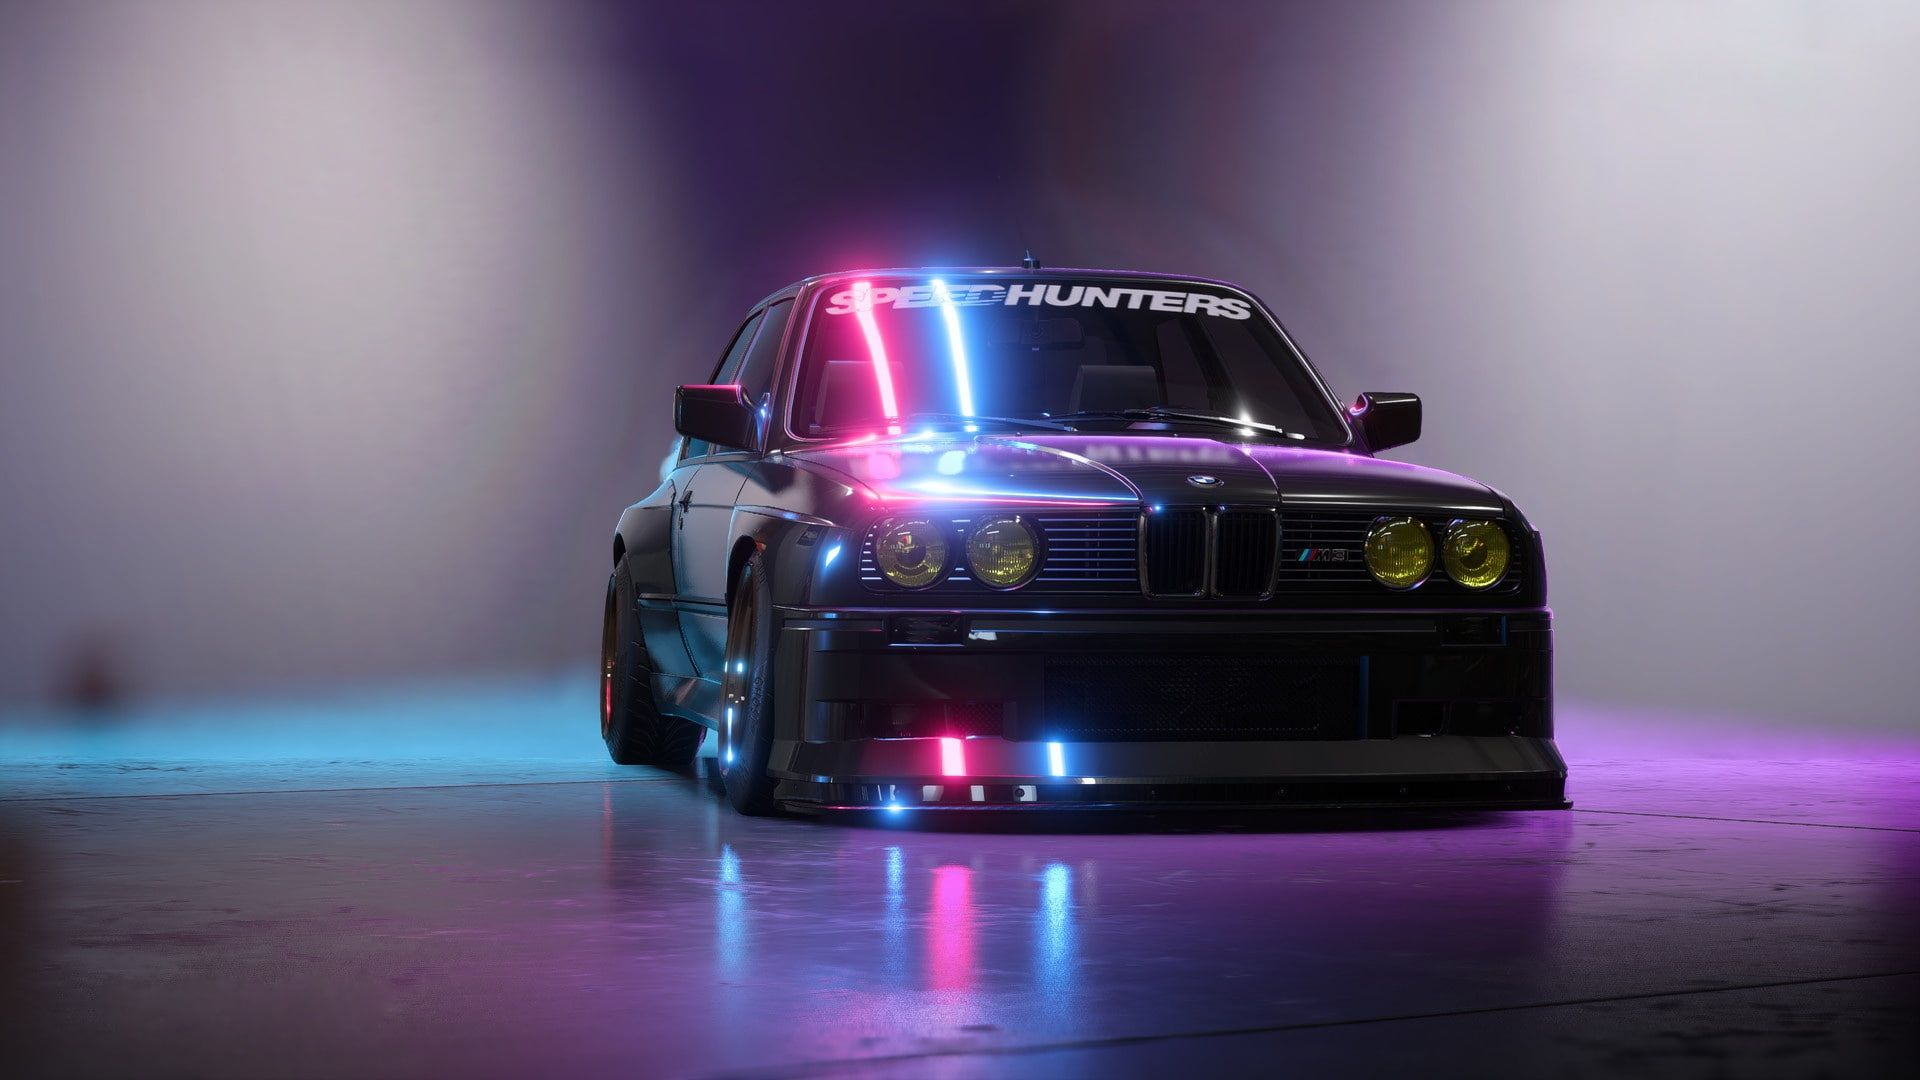 Auto The Game Bmw Machine Bmw Nfs Bmw M3 Rendering Concept Art The Front Bmw E30 Payback Bmw E30 M3 Nfs Payback Tran Bmw M3 Wallpaper Bmw E30 Bmw E30 M3